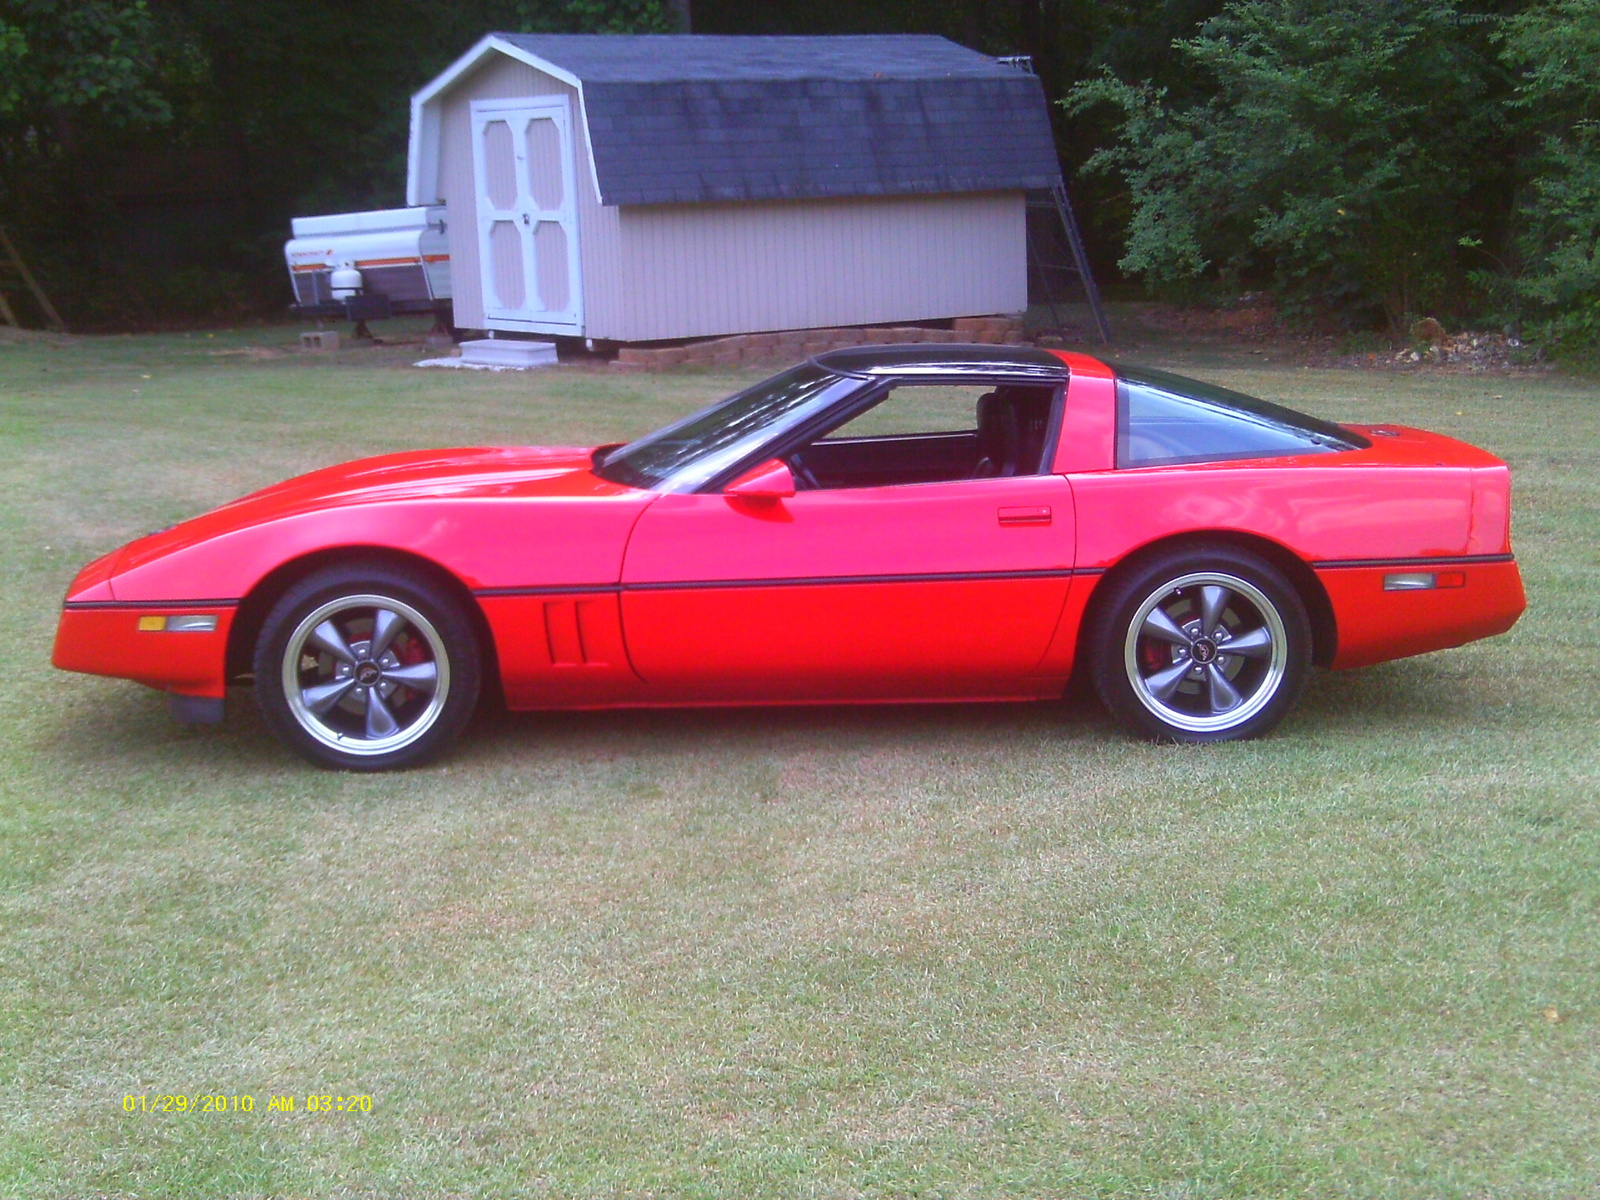 1992 chevrolet corvette with 1984 Chevrolet Corvette Pictures C419 Pi35957461 on 2015 tahoe ltz likewise Watch as well 1977 Smokey And The Bandit 1977 Pontiac Firebird Trans Am additionally 1963 Chevrolet Corvette Grand Sport additionally Watch.